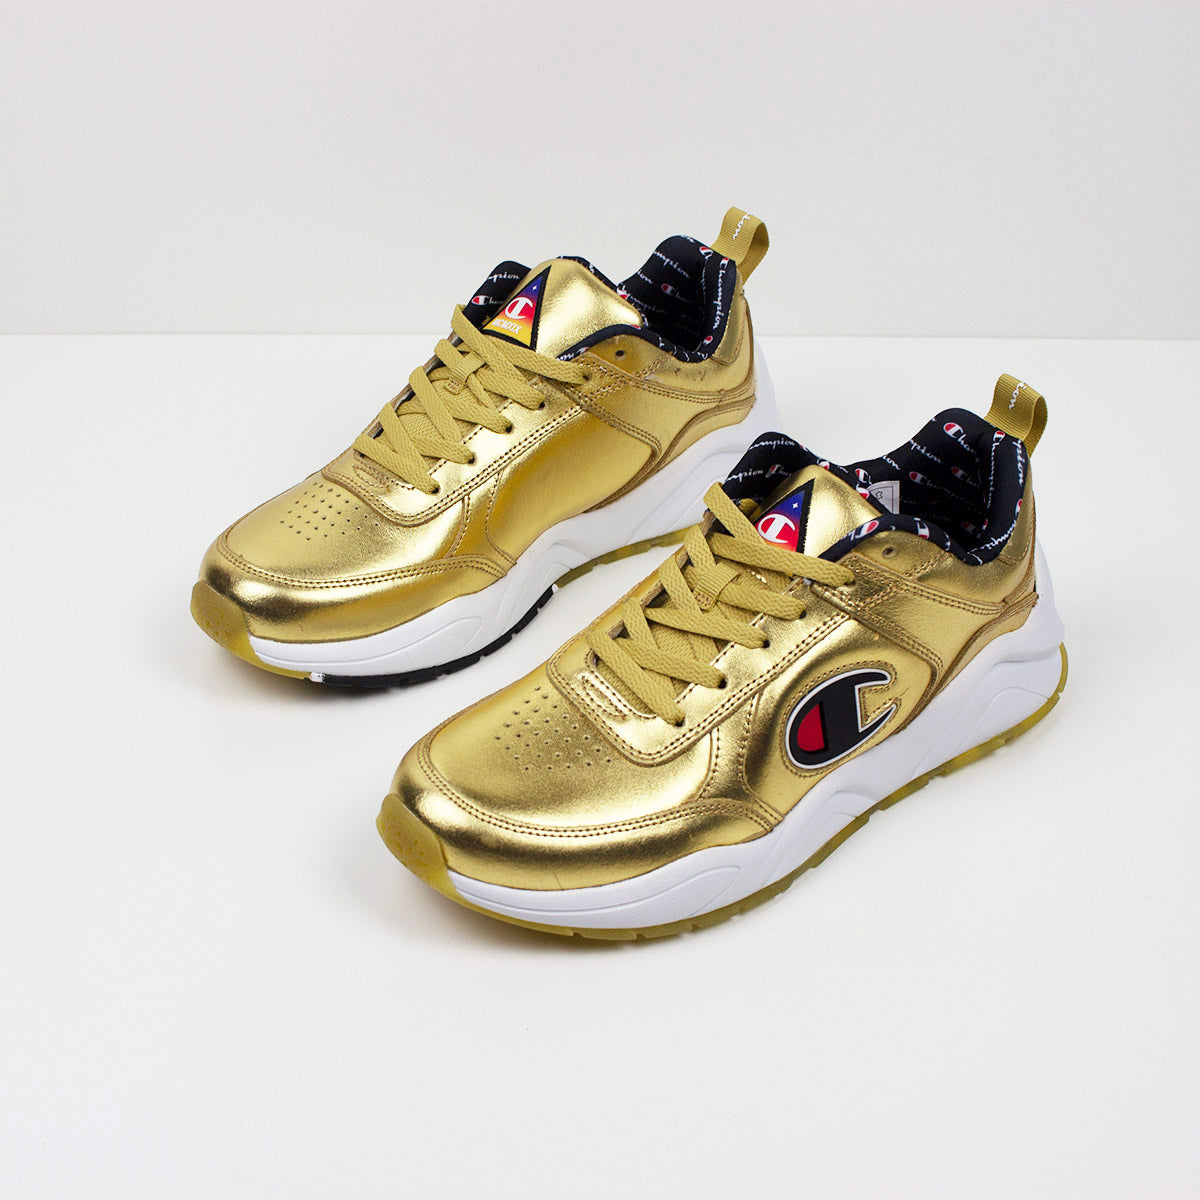 fc34f444d09 Champion 93 Eighteen Metallic Gold Sneakers - PremierVII. Champion